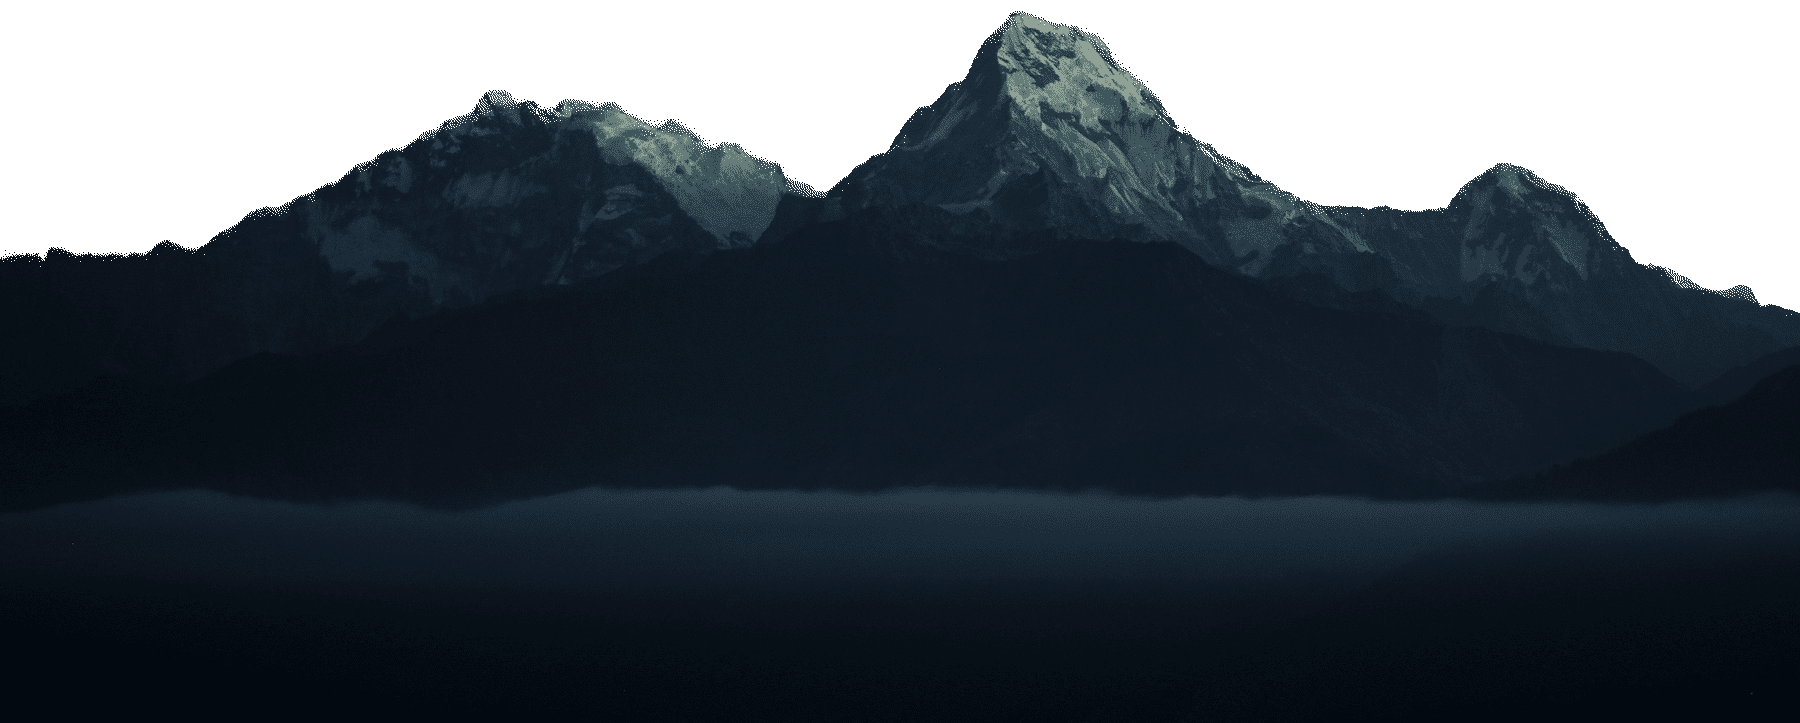 Zpacks Background Mountains